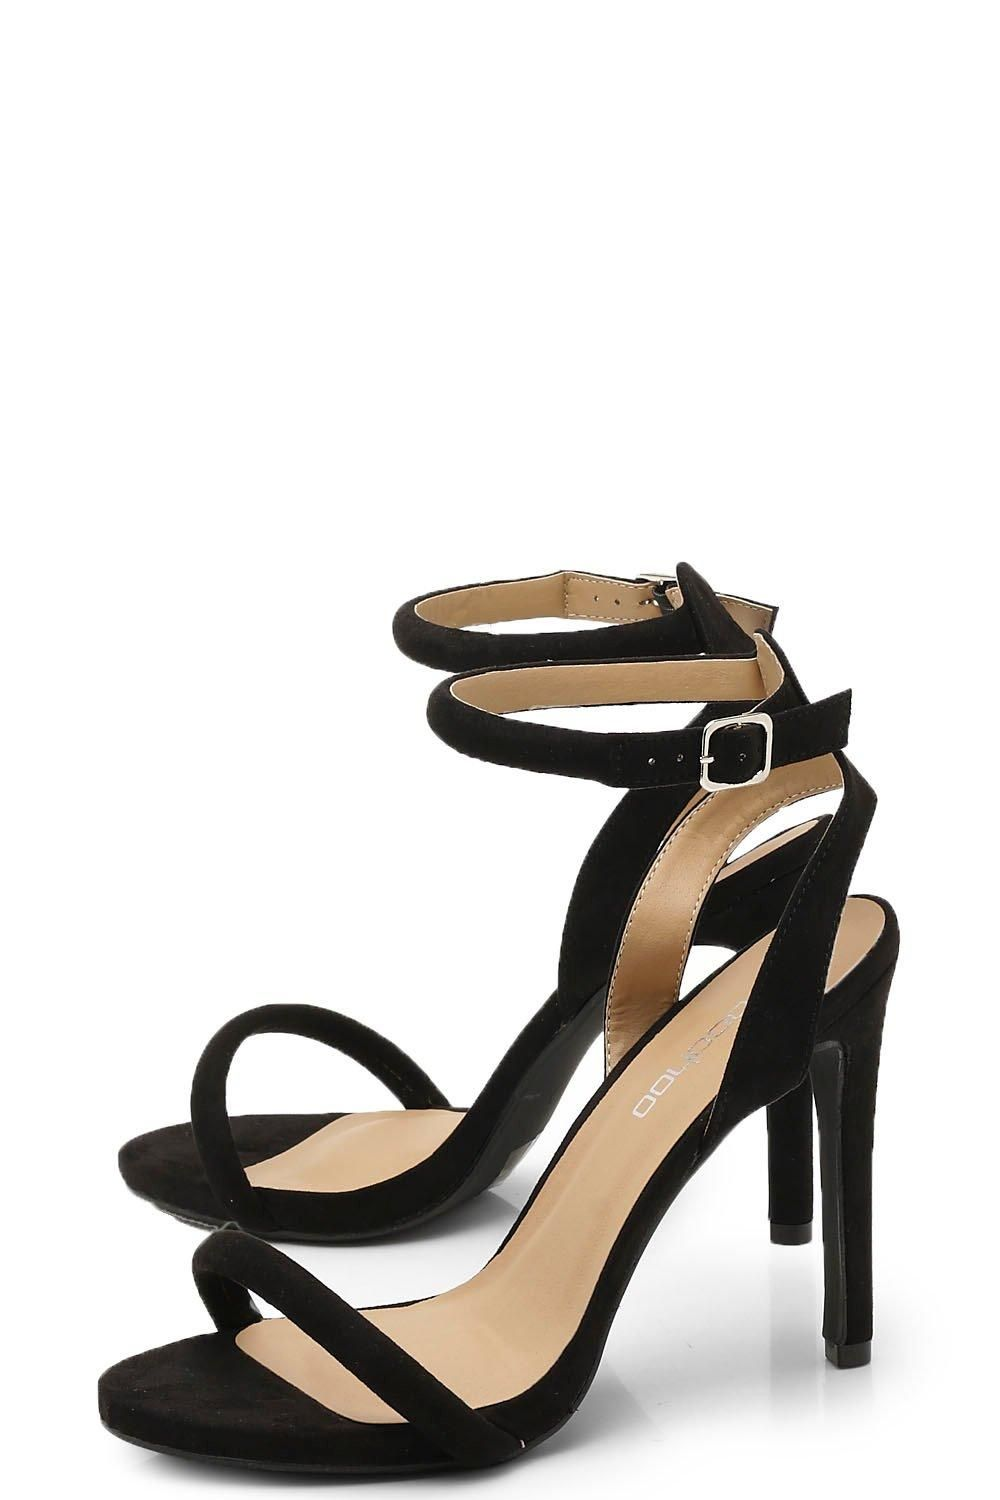 Two Part Strappy Heels Boohoo In 2020 Simple Black Heels Heels Strappy Heels